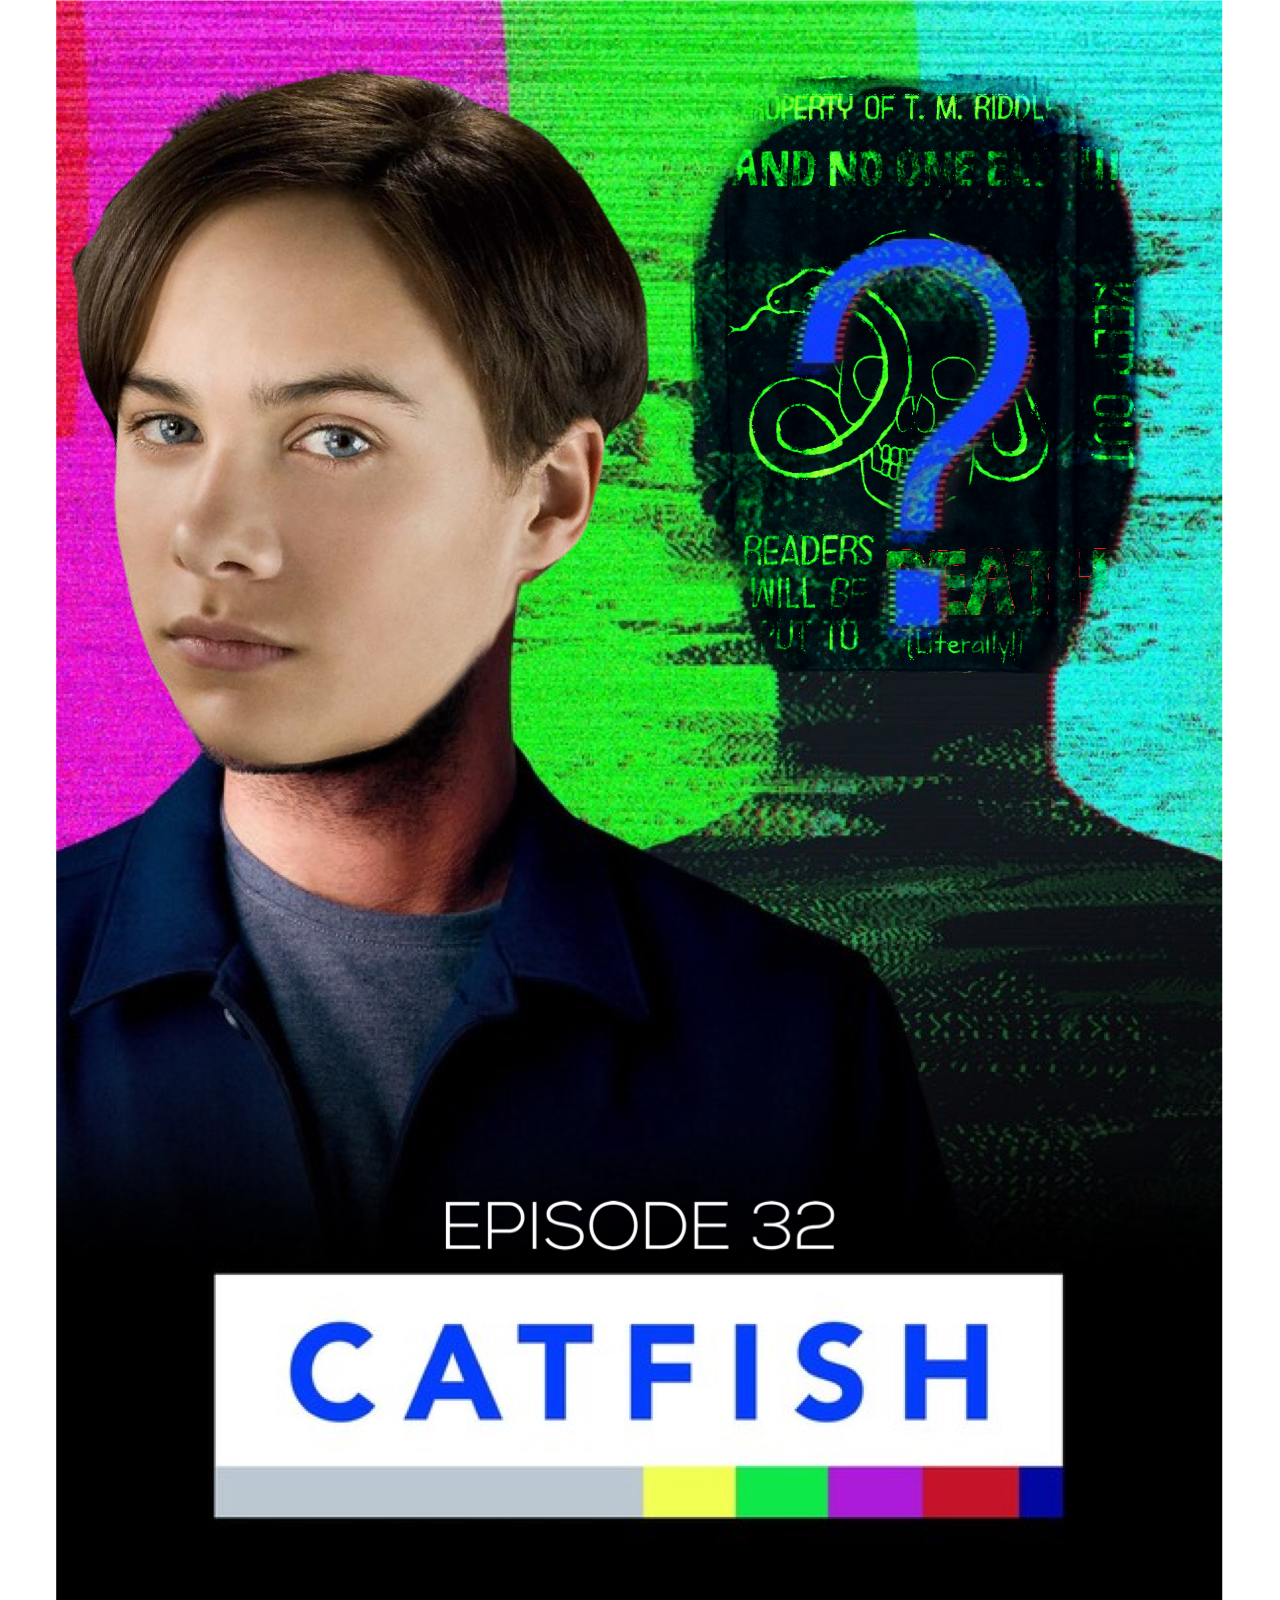 "A promo image for the show Catfish, in which the host stands off center with his shadow prominent behind him and a question mark is over the face of the shadow. The host's head has been replaced with Tom Riddle's, and an image of the diary is superimposed over the shadow's face. The bottom of the image says ""Catfish, Episode 32."""